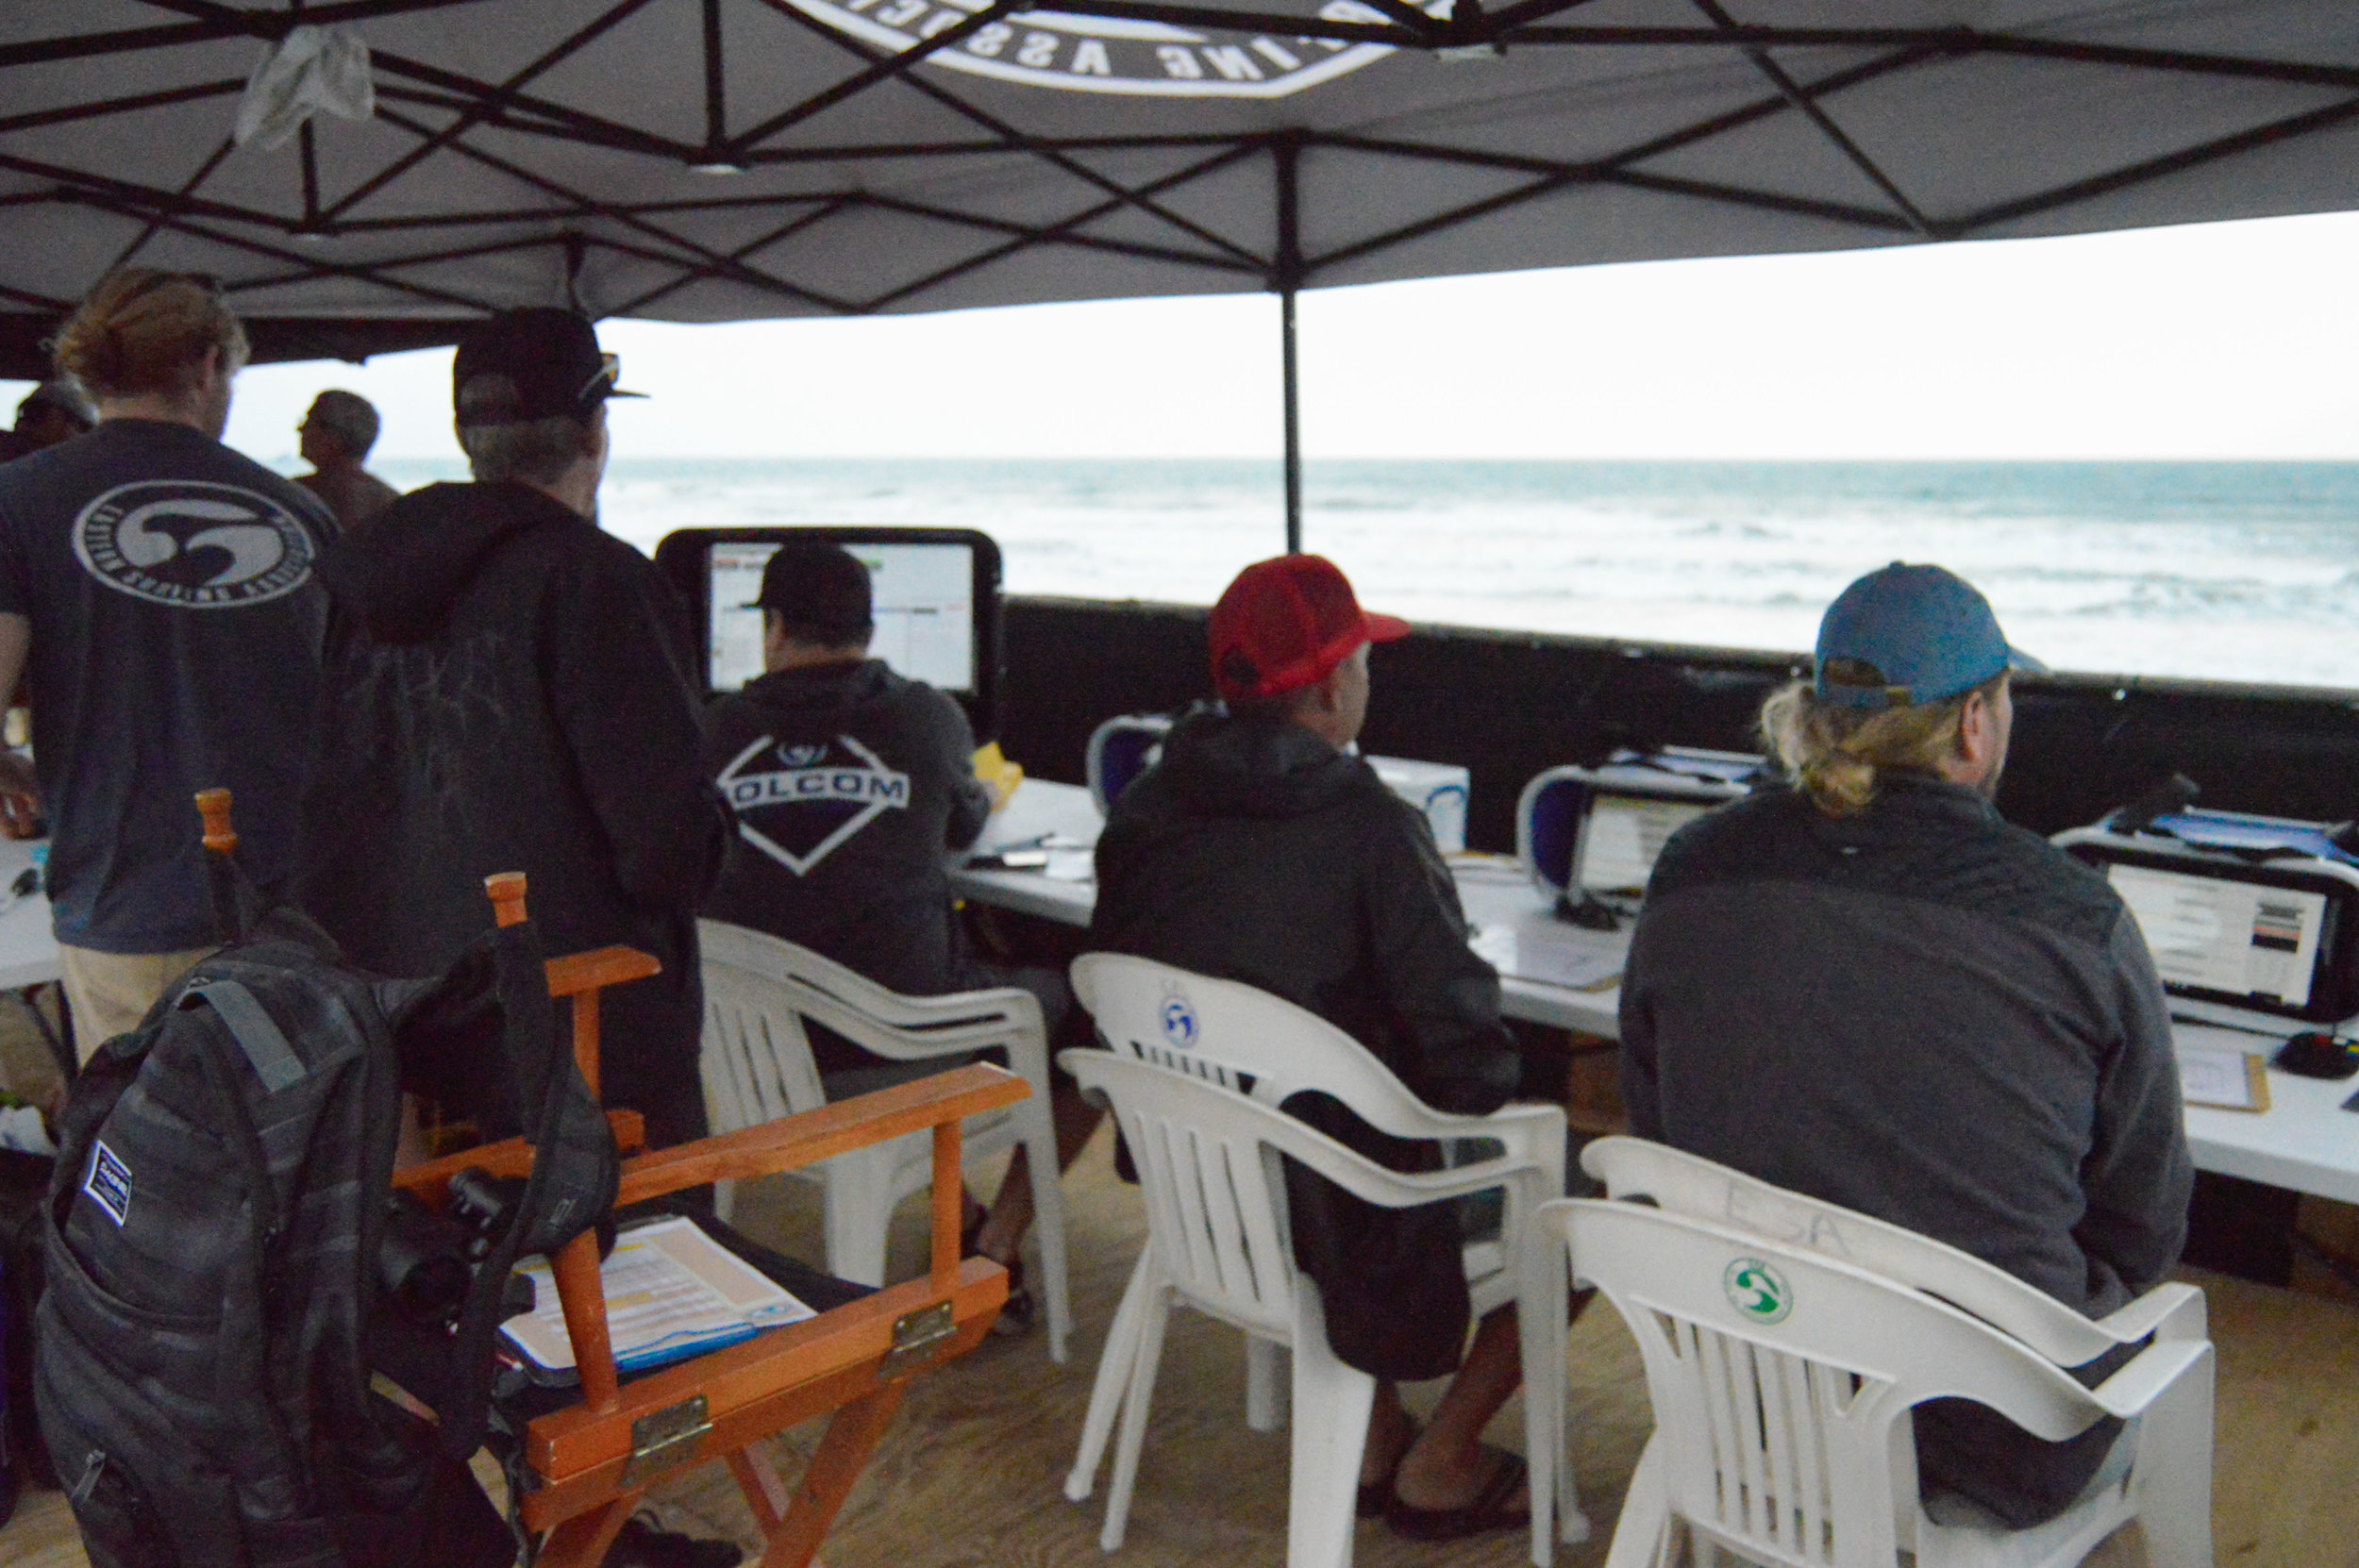 """TIPS FROM THE TOWER    PART 1: QUALITY OVER QUANTITY   By: Brandon Russell  Fresh off the road and back from judging another surf contest (ESA Mid-Atlantic Regionals in Nags Head, NC), I thought it would be a good time to start writing a small series of articles focused on improving heat strategies for competing amatuer surfers. Here's the first installment of """"Tips from the Tower"""". ( read more )"""